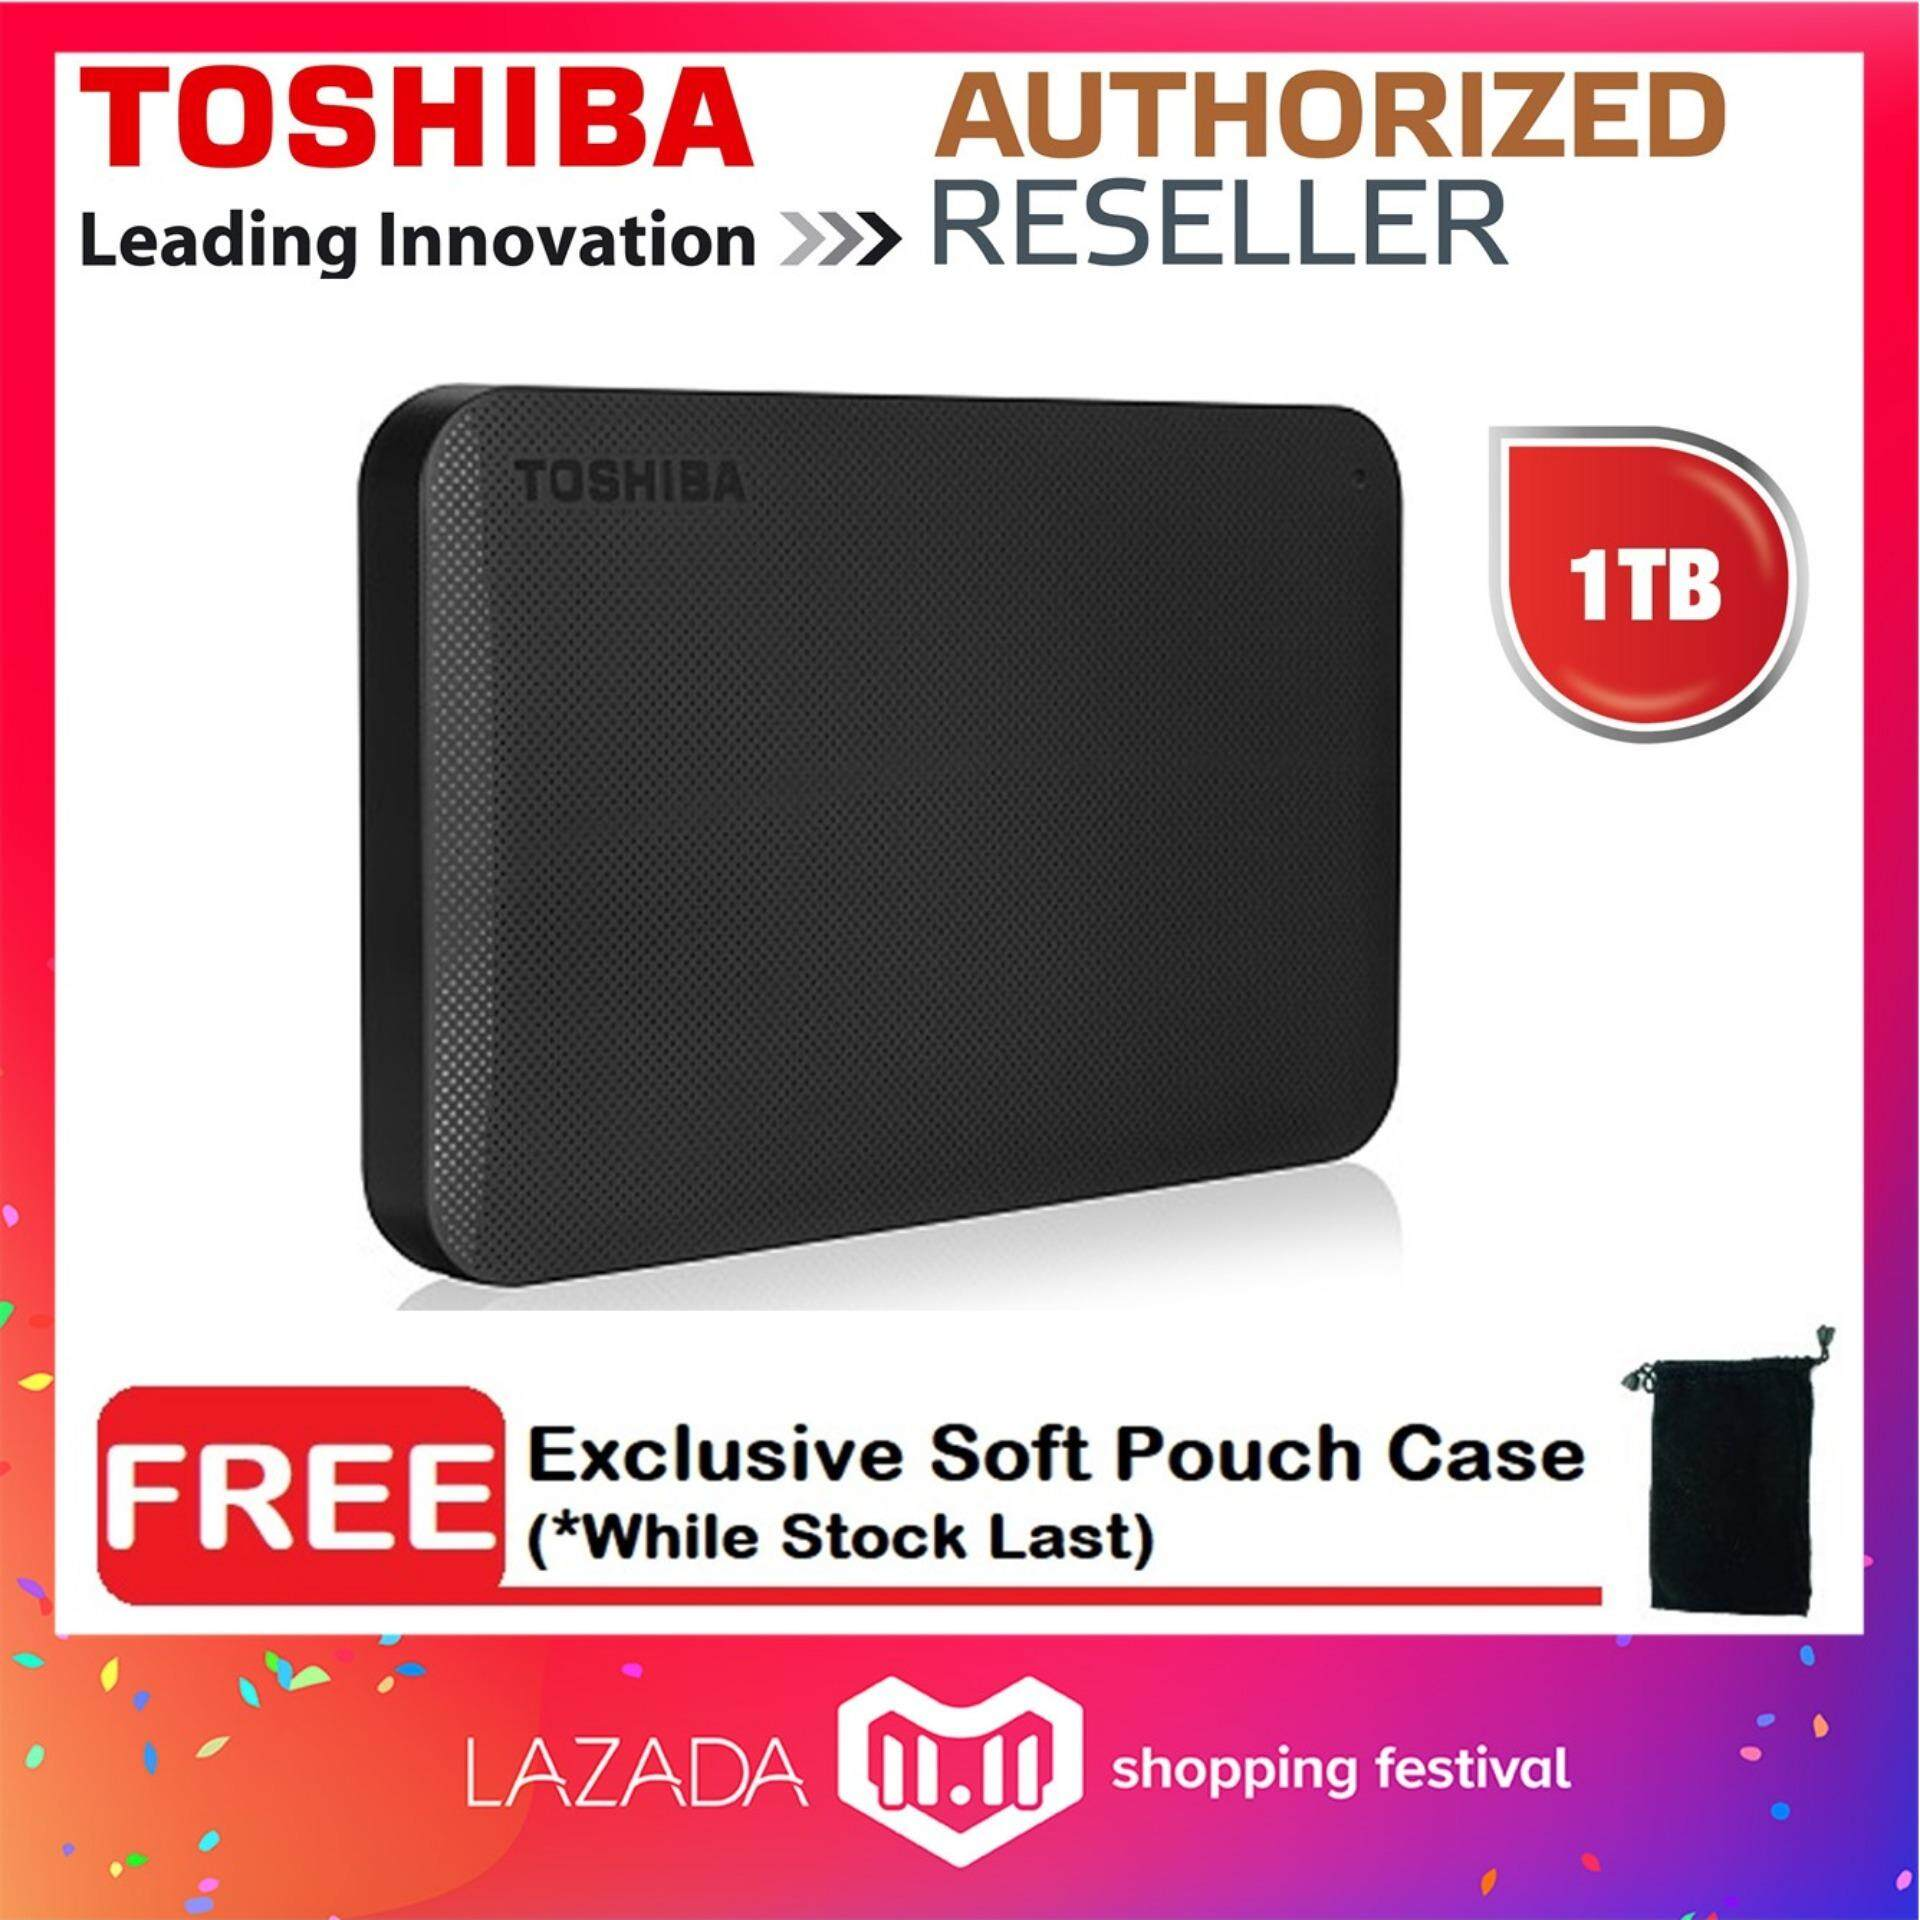 External Hard Drives Disk With Best Price In Malaysia Orico 2588us3 Hdd Harddisk Enclosure 25 Inch Portable Super Speed Usb 30 Toshiba Canvio Ready Basics 1tb Drive Free Soft Pouch